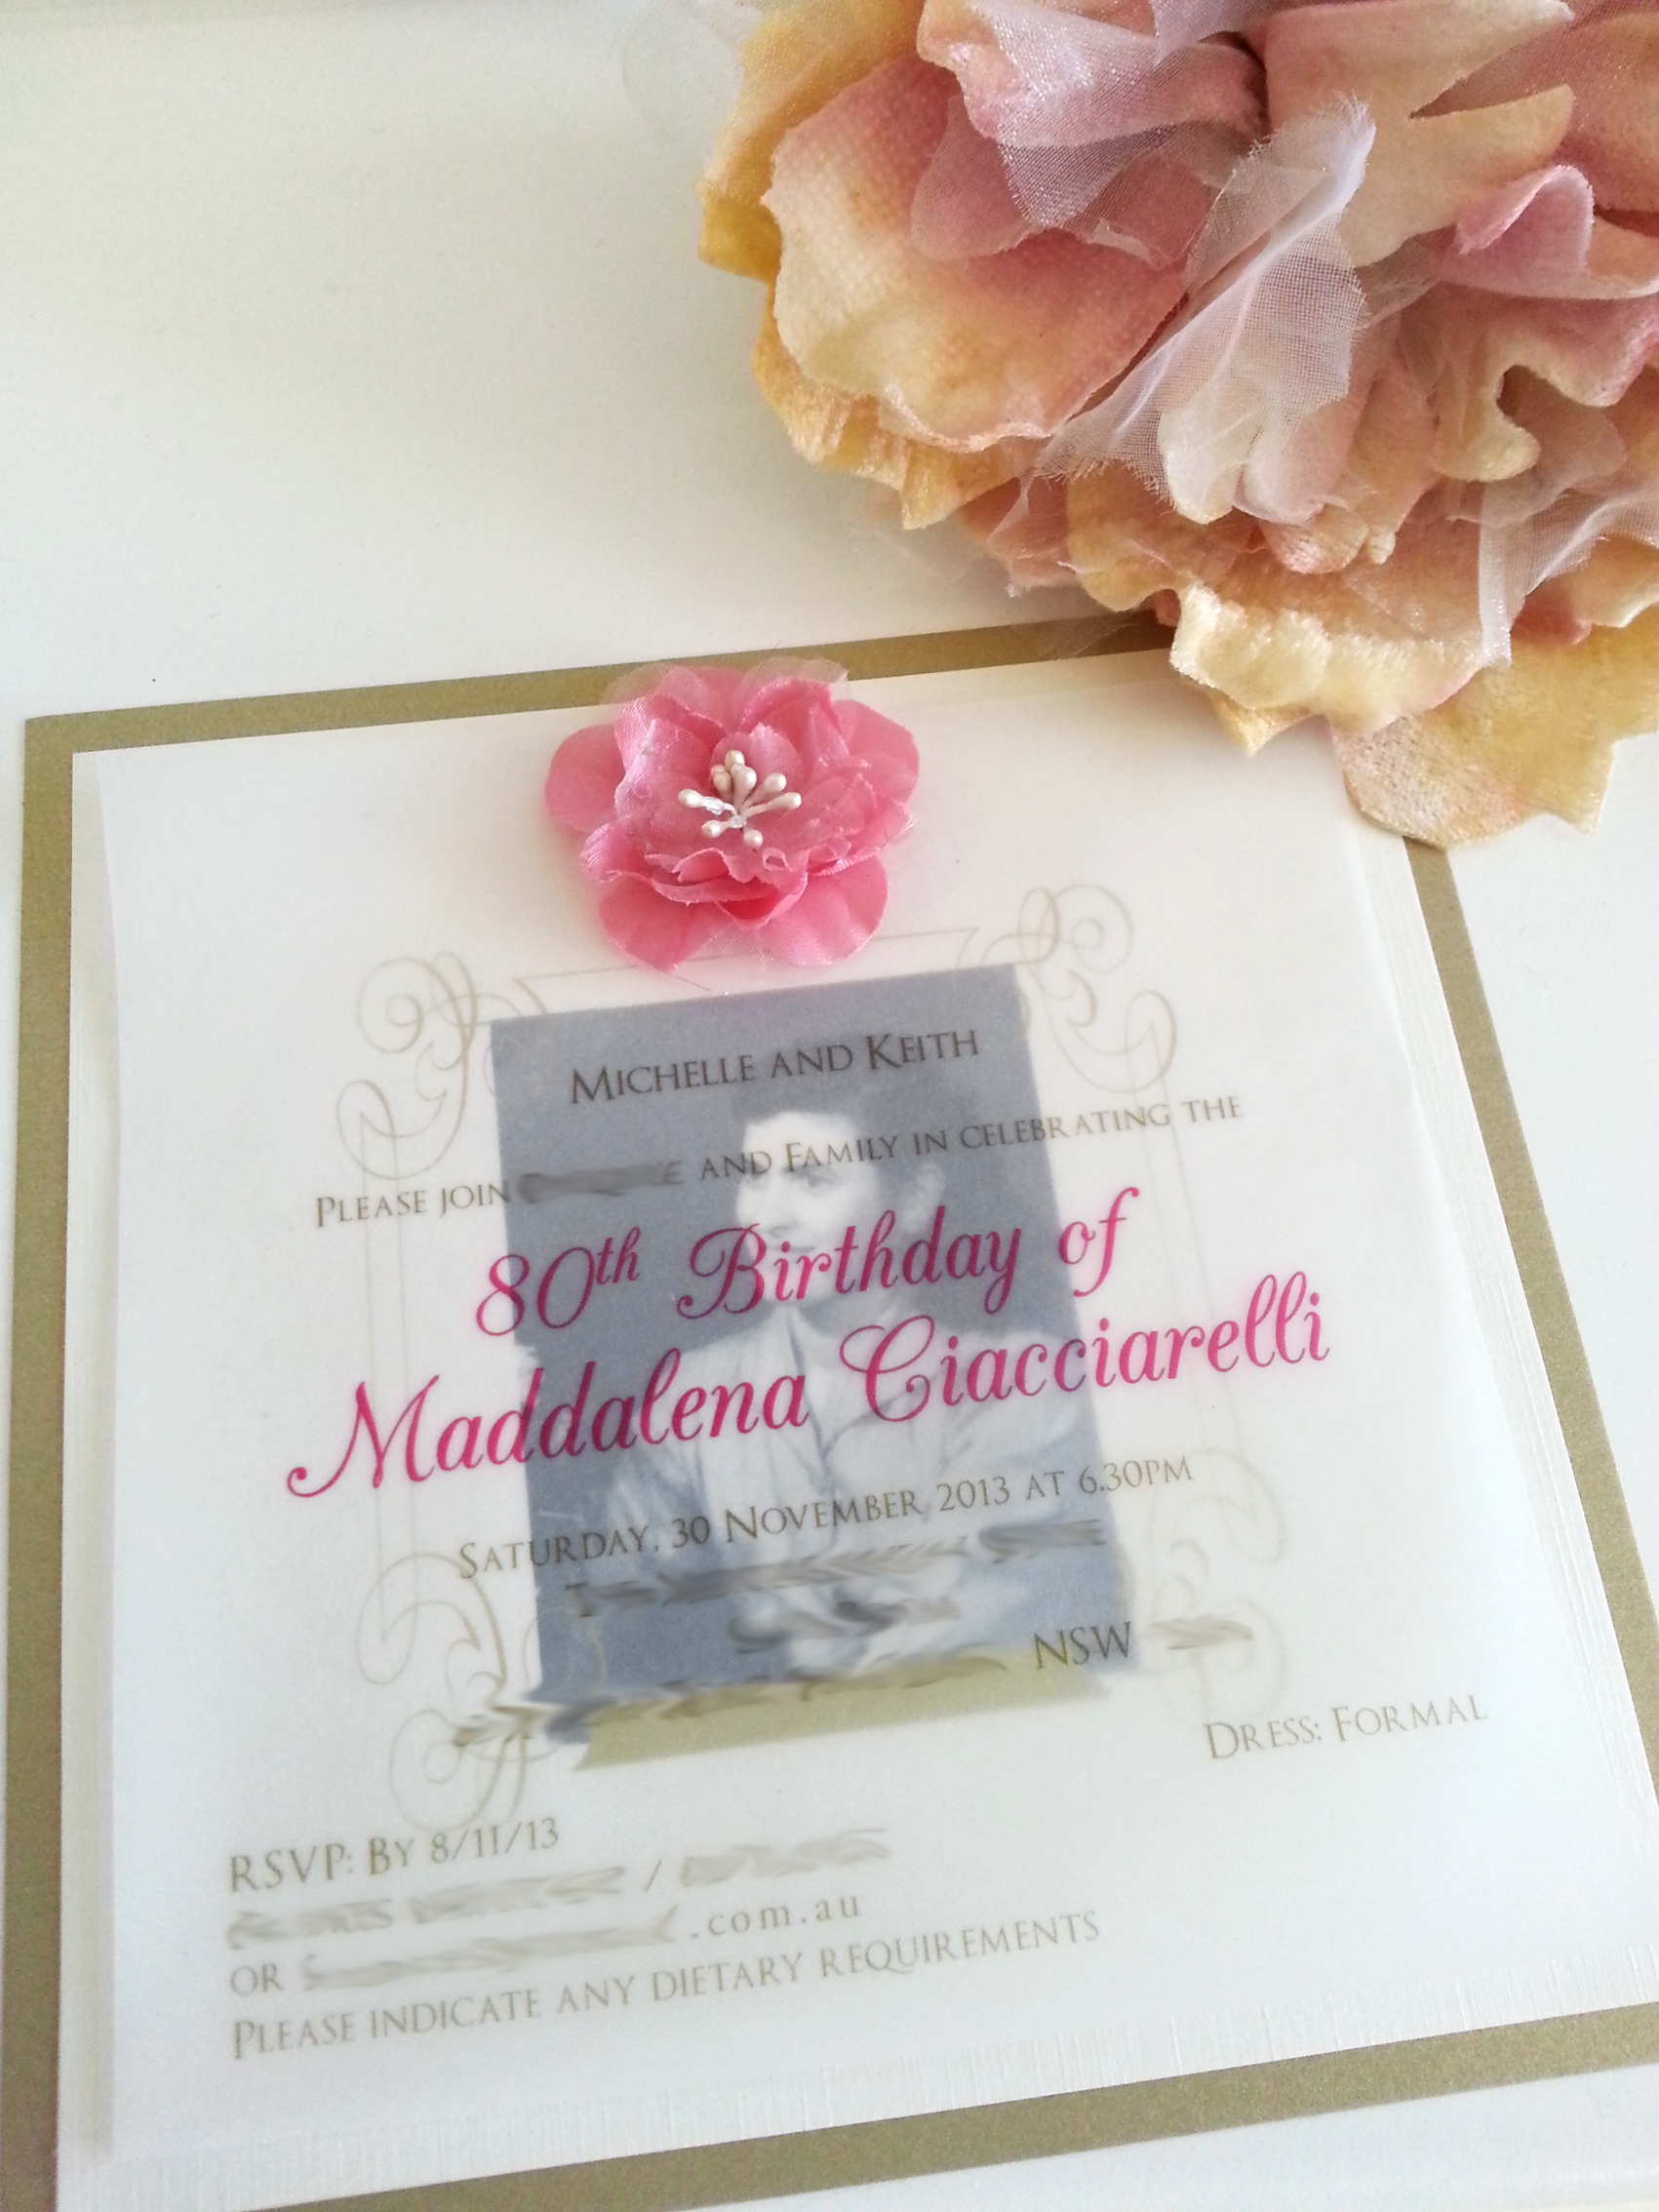 80th+Birthday+invitation+with+flower+Sydney.jpg